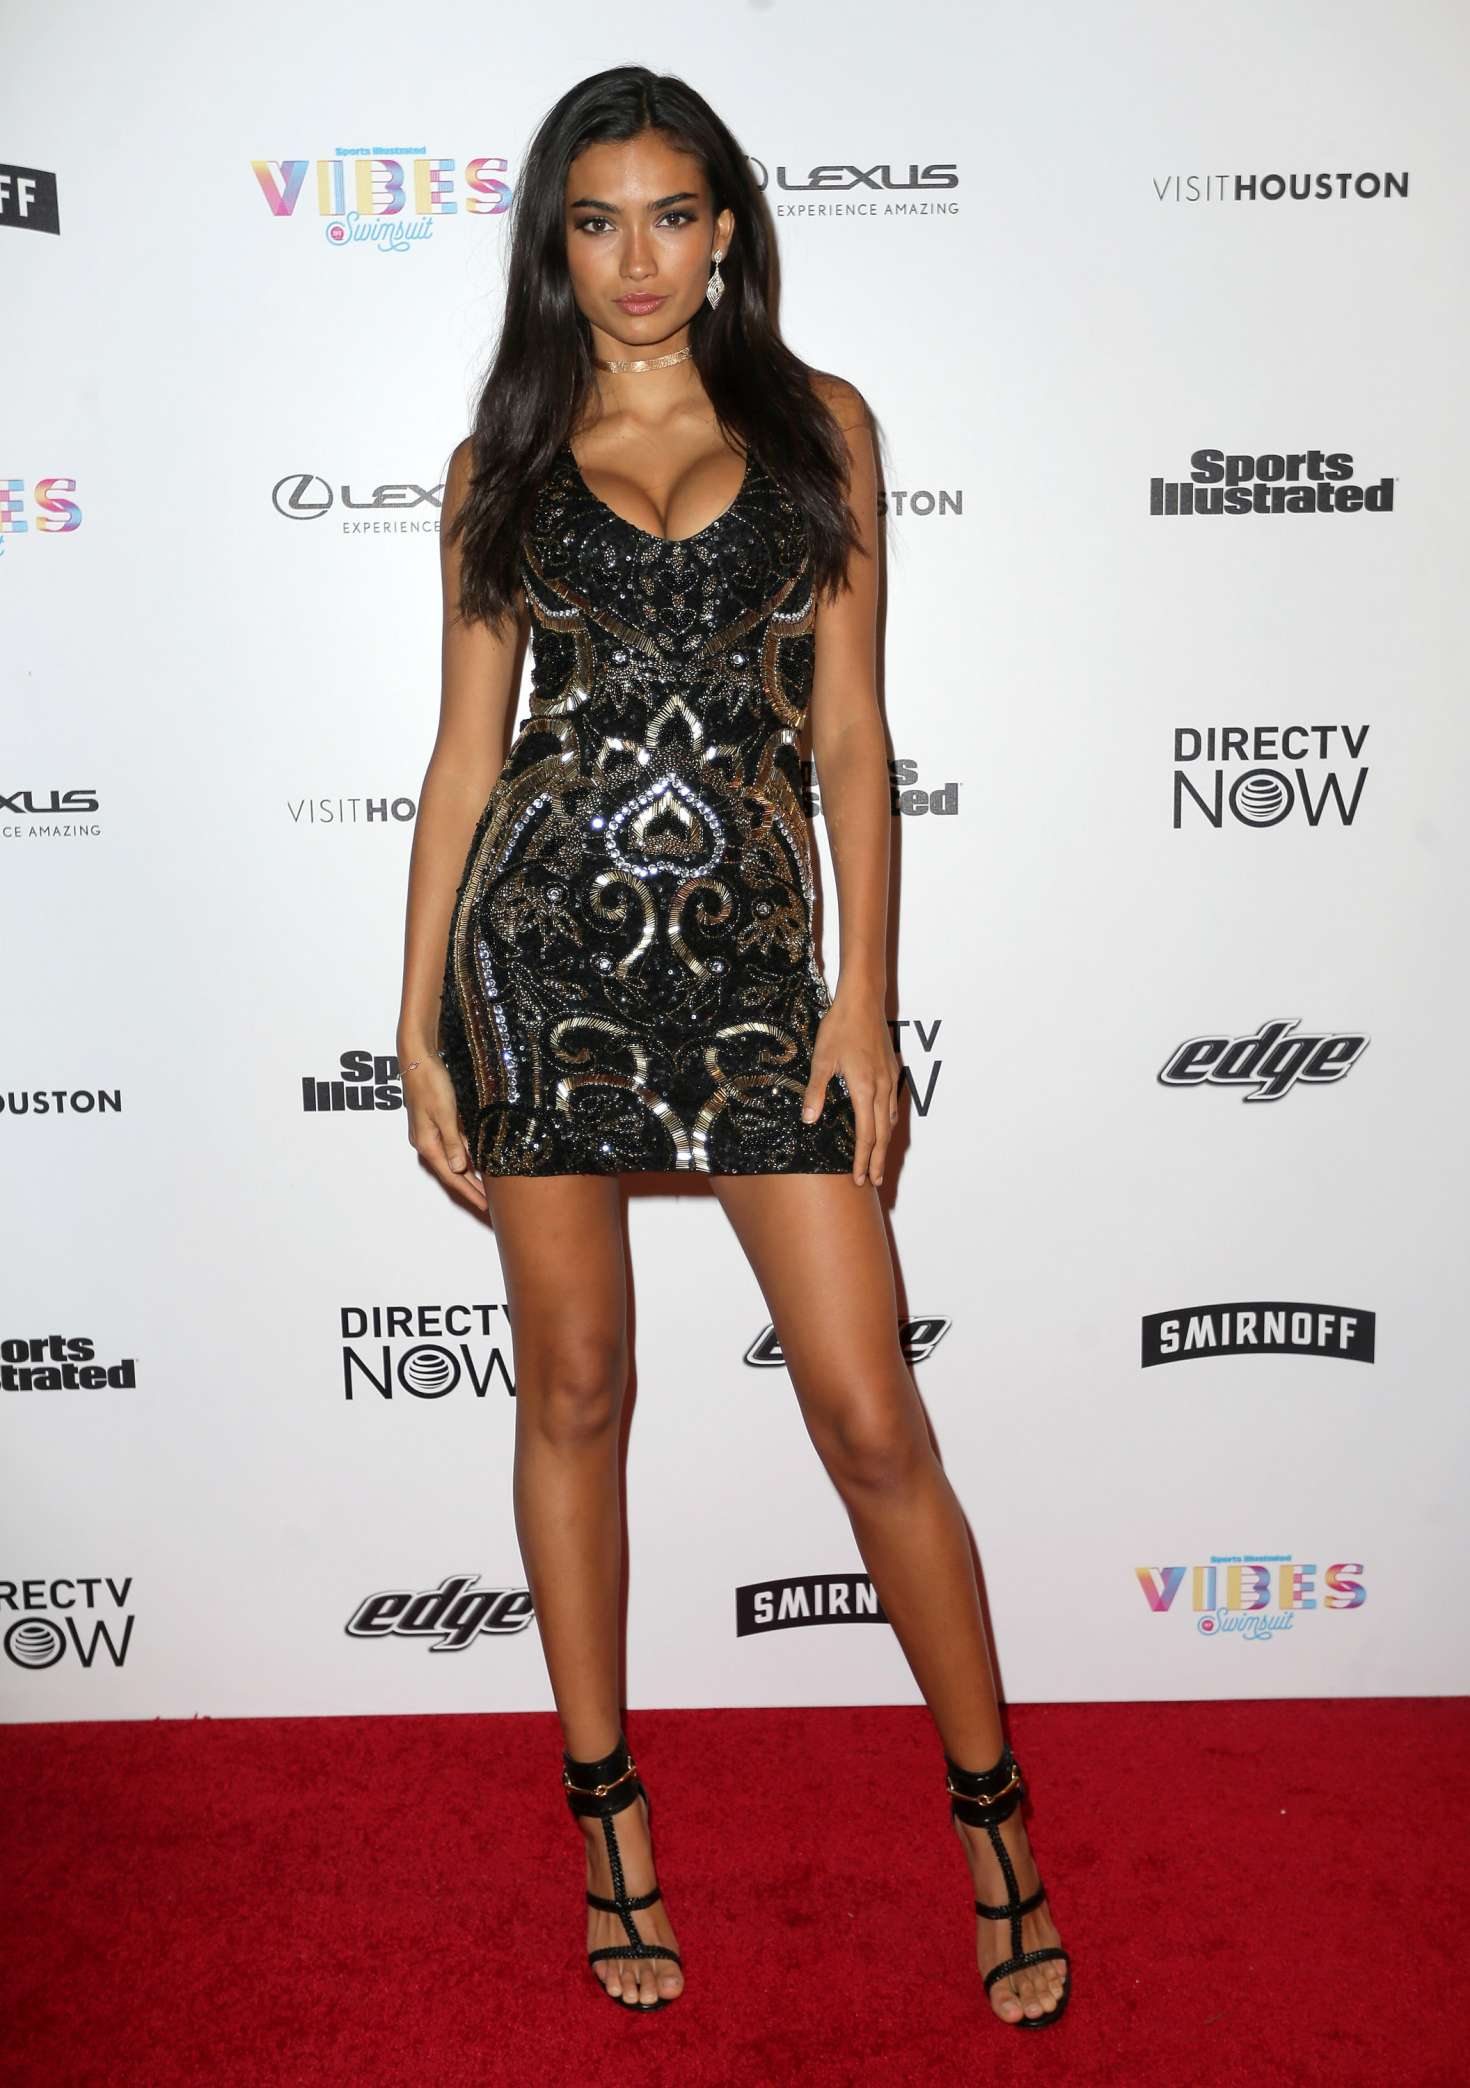 Kelly Gale Hot Night Dress - Kelly Gale Hot Night Dress